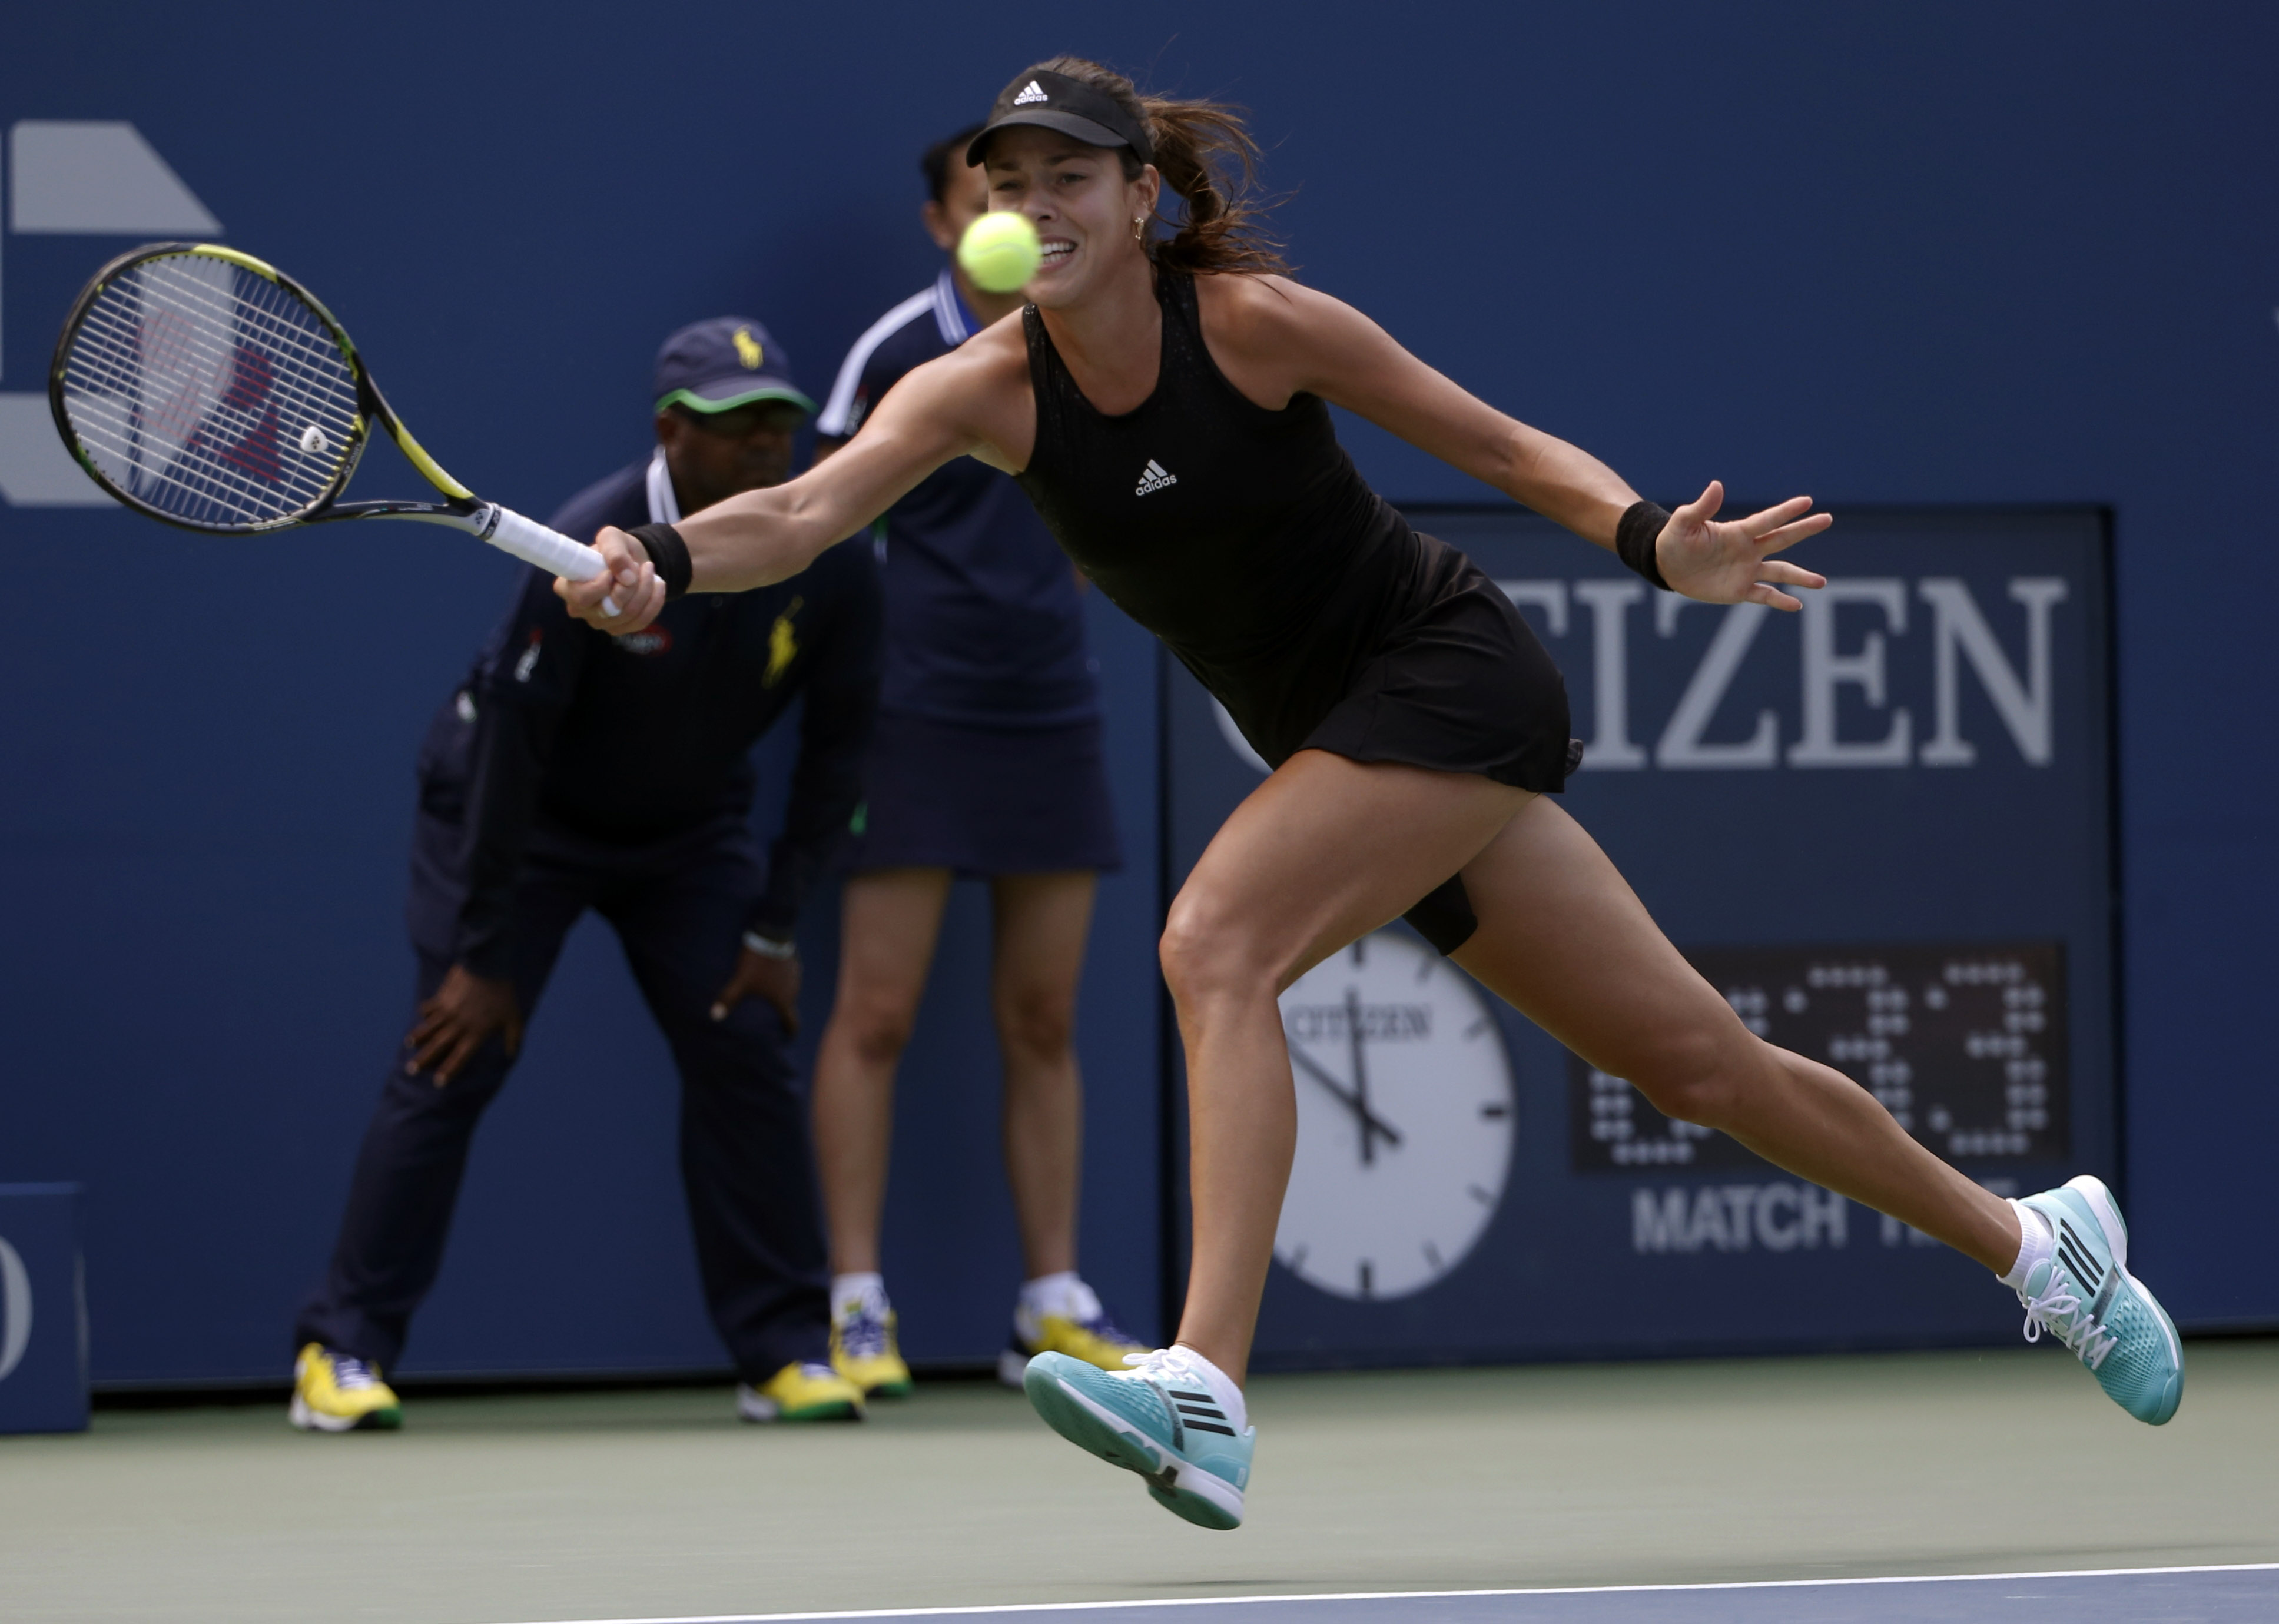 Ana Ivanovic, of Serbia, returns a shot against Alison Riske, of the United States, during the opening round of the 2014 U.S. Open tennis tournament, Tuesday, Aug. 26, 2014, in New York